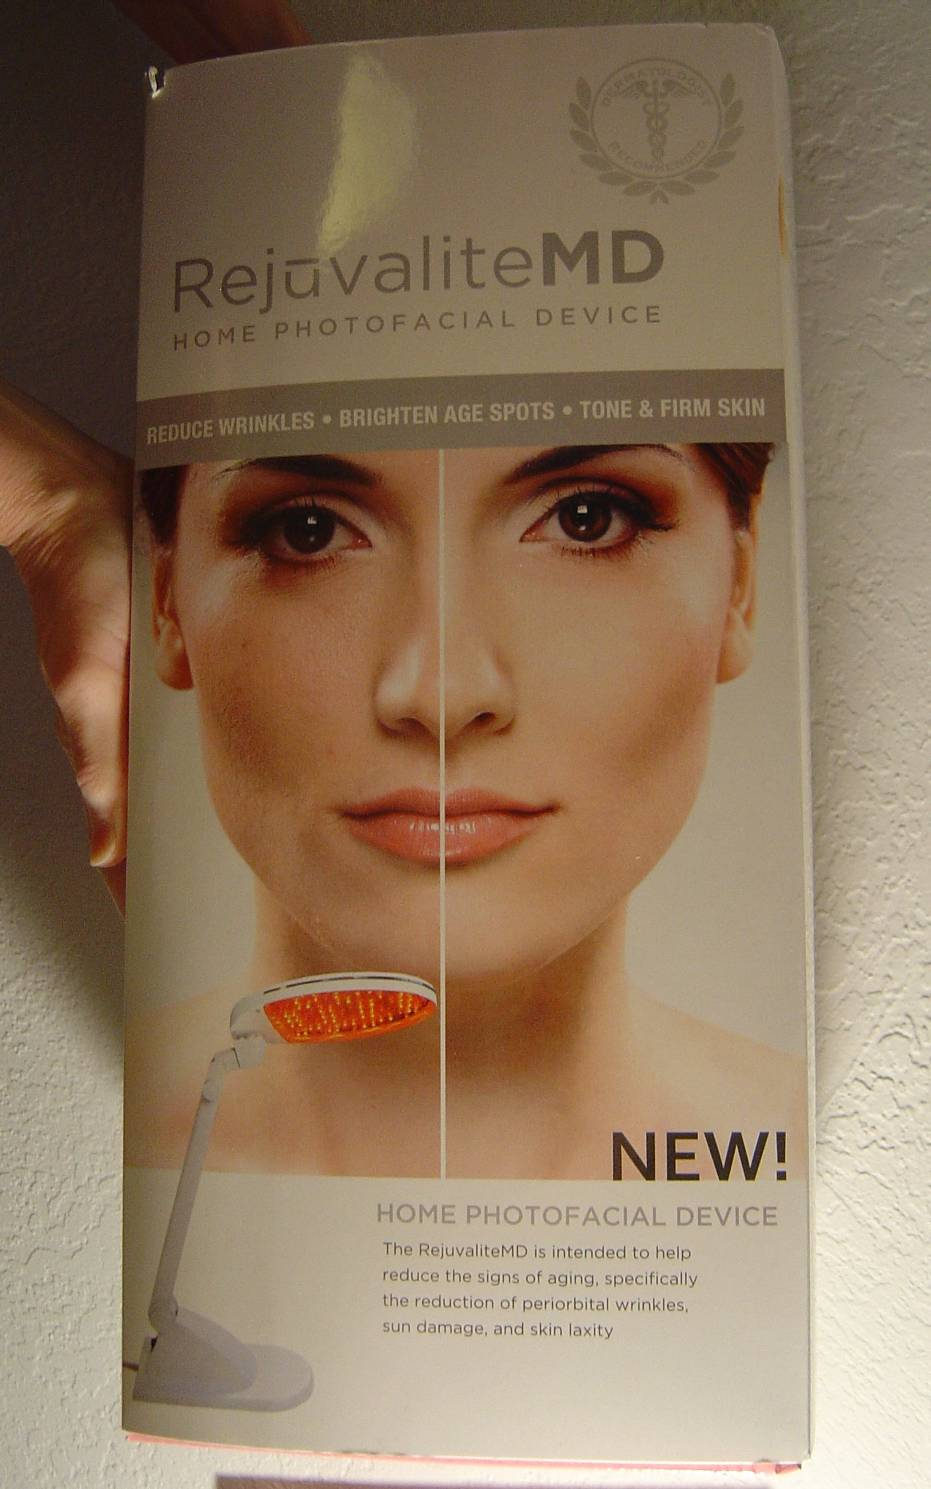 RejuvaliteMD Home Photofacial Device